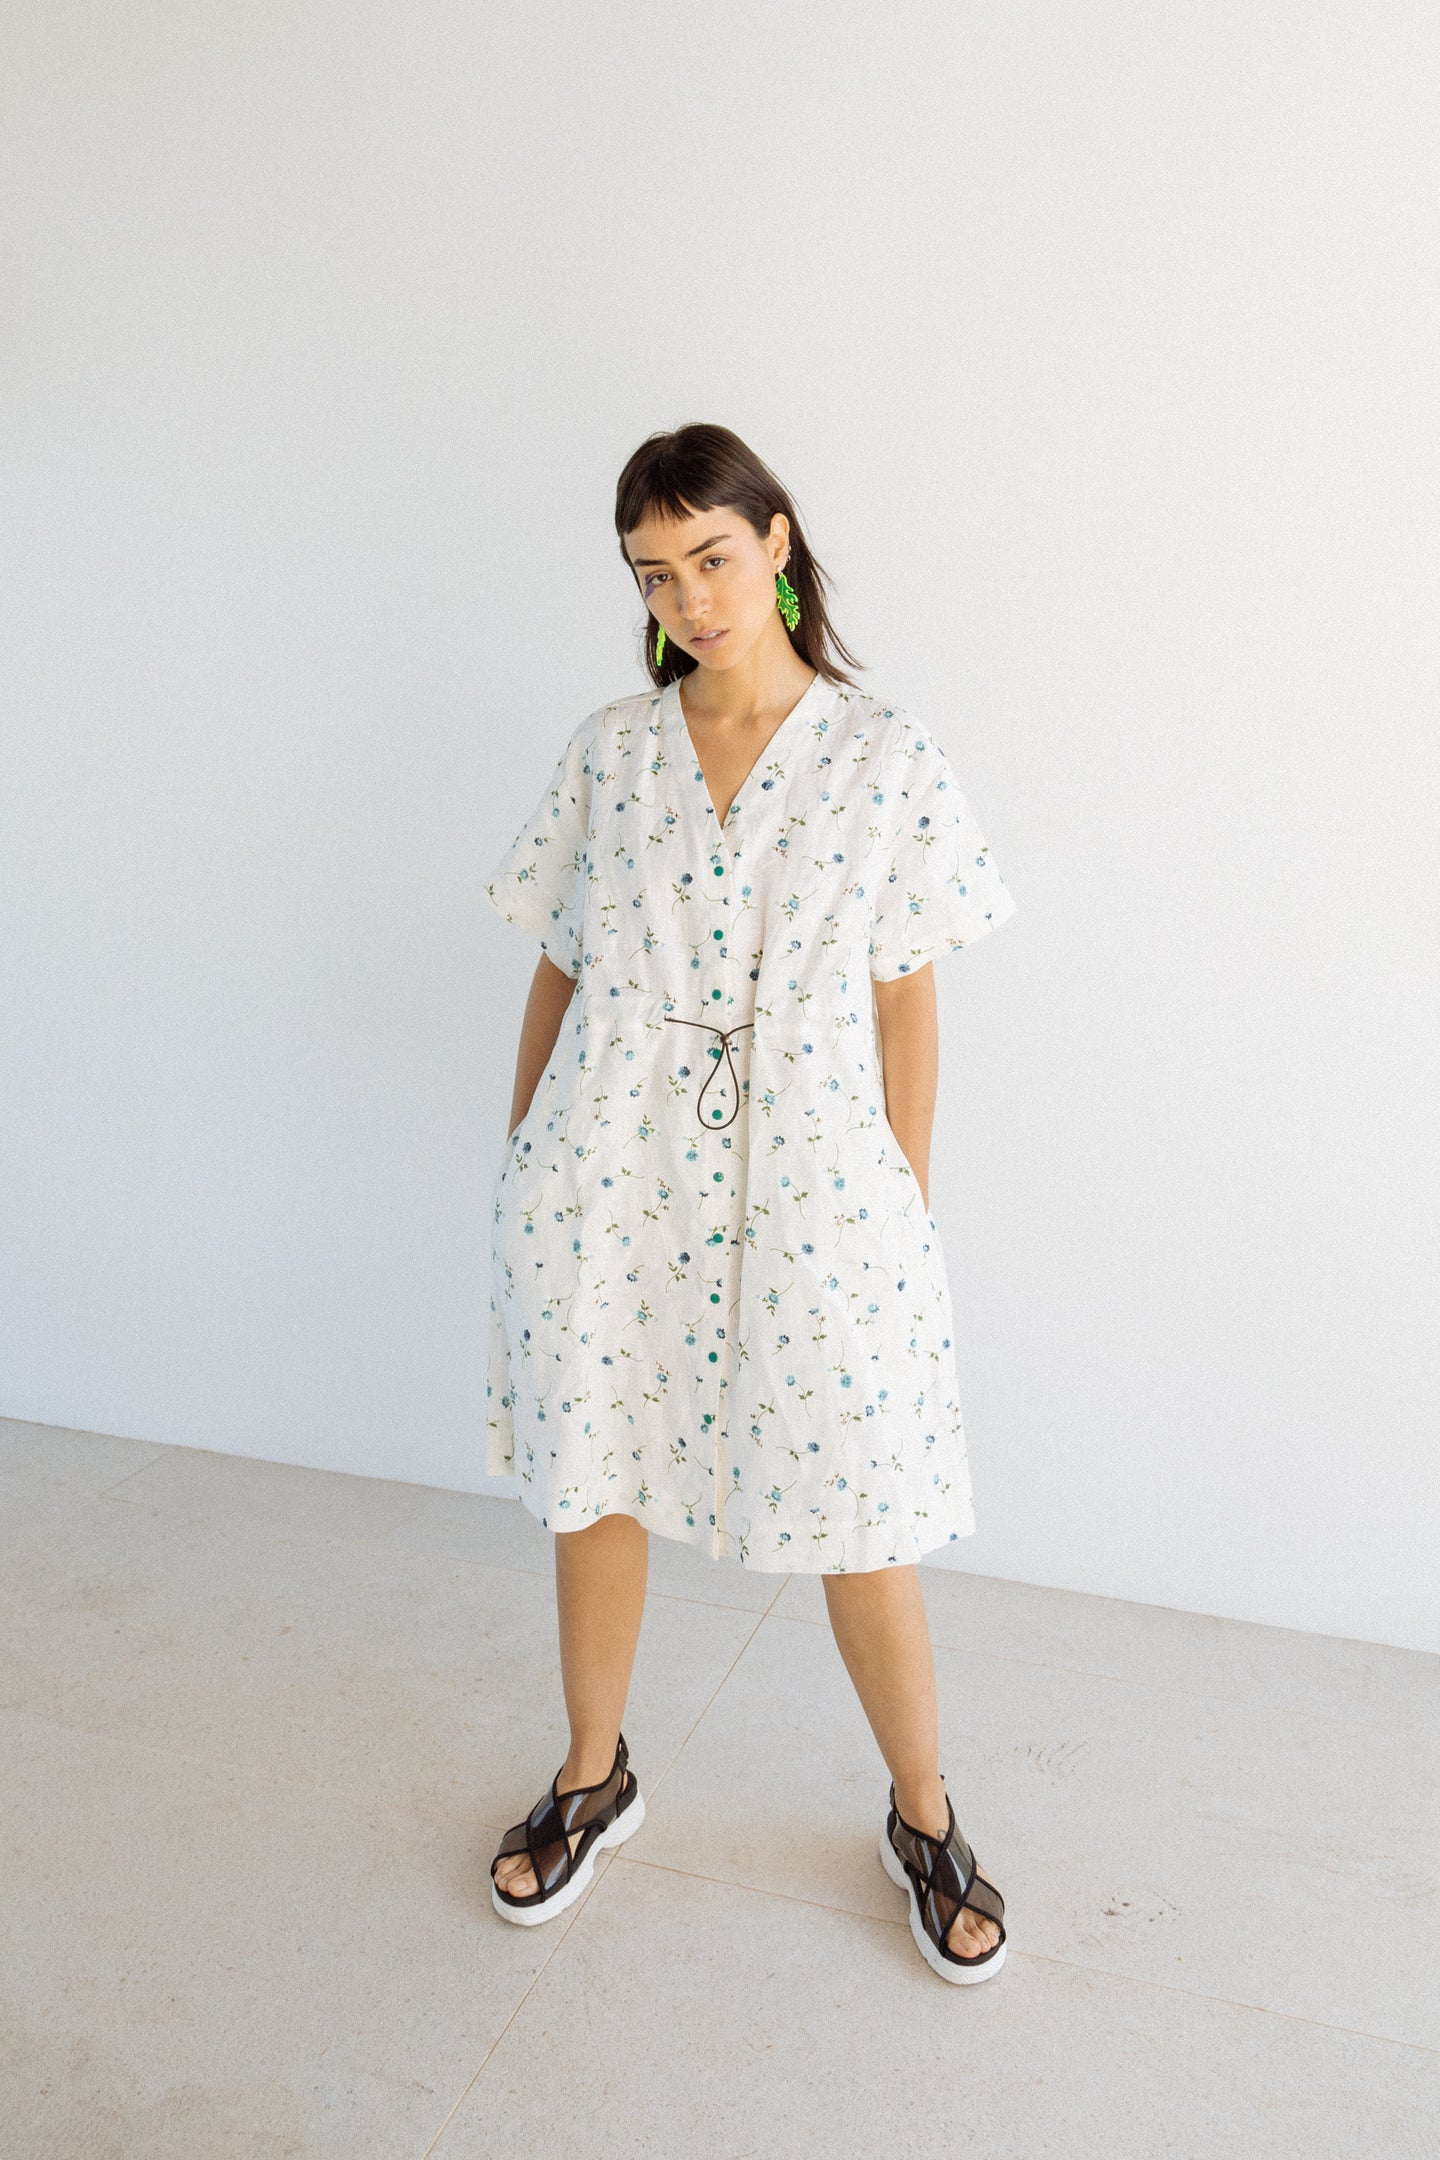 Cinched Dress in White Floral Linen